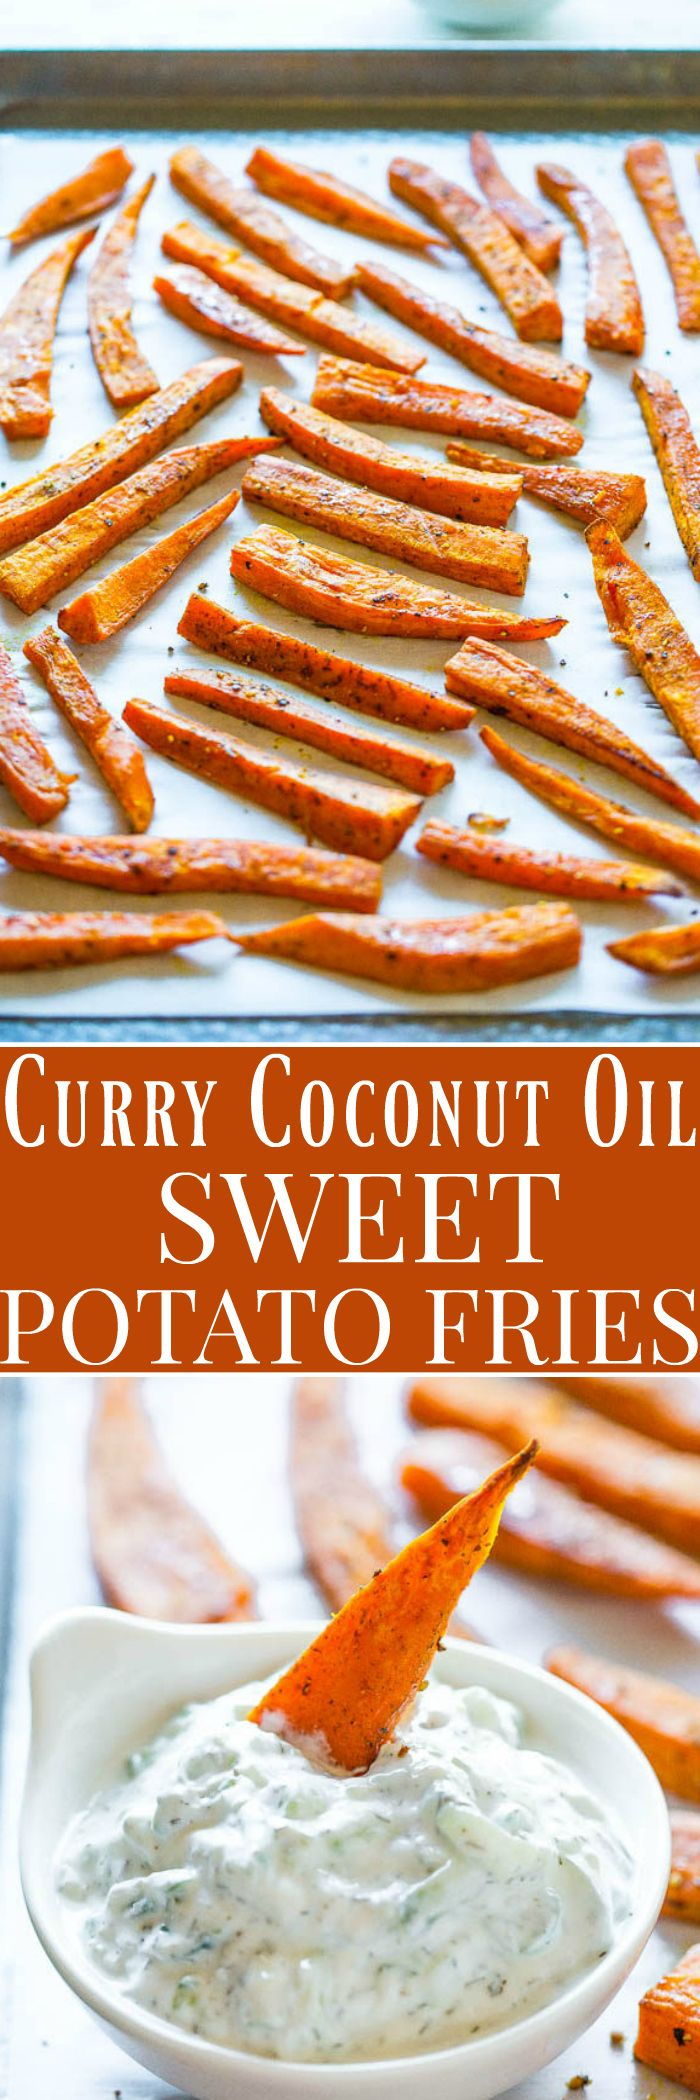 Curry Coconut Oil Sweet Potato Fries with Cucumber Dill Dip - A fast ...